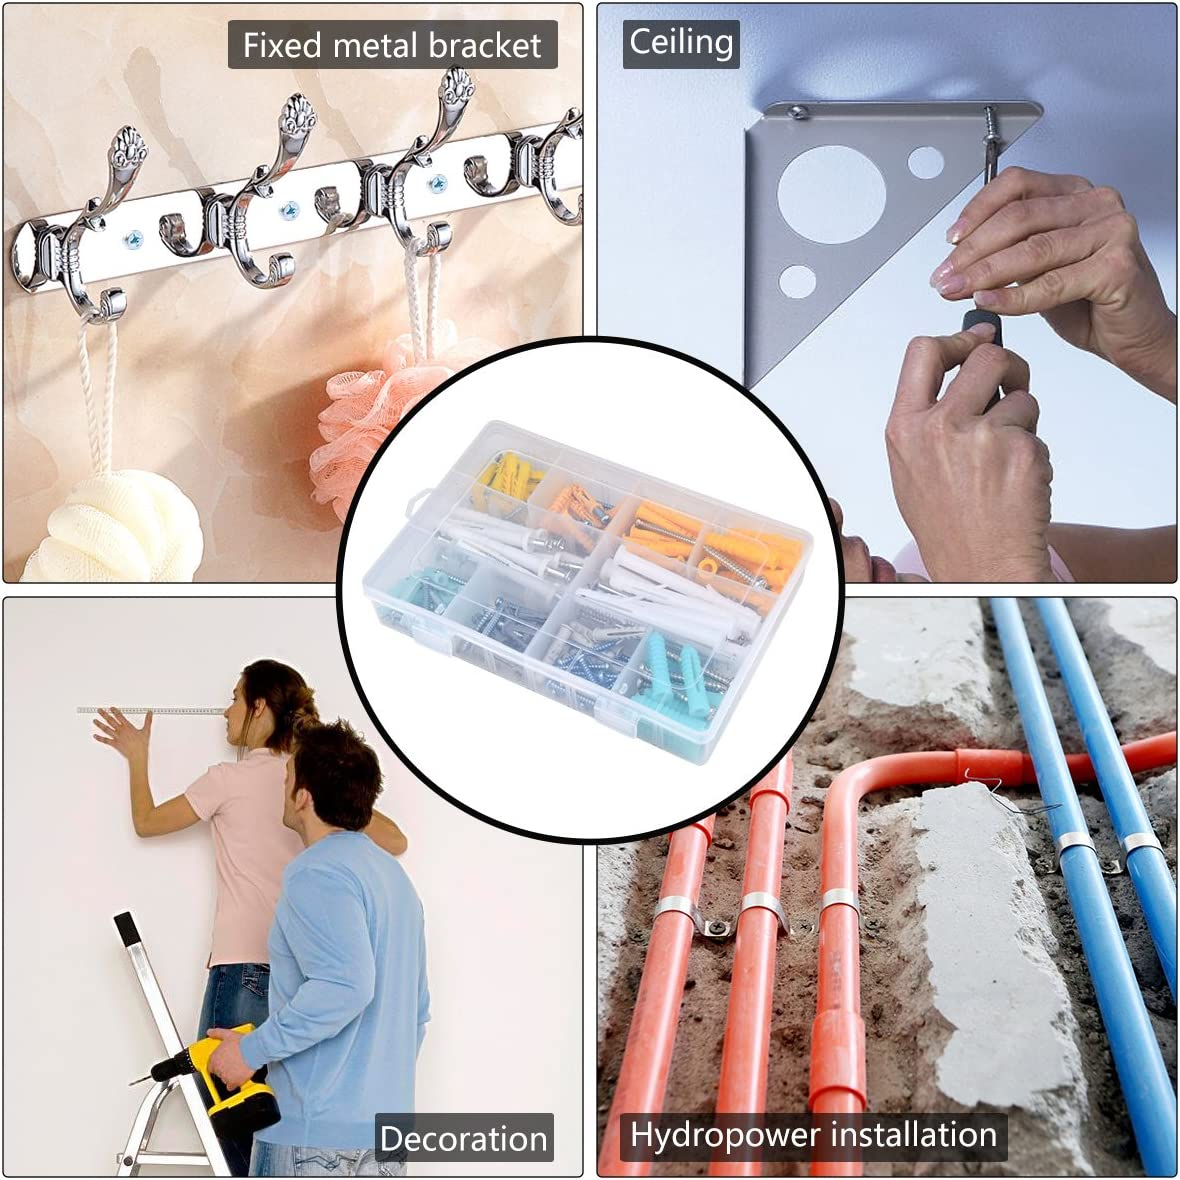 Building Hotusi 200Pcs Self Drilling Drywall Ribbed Anchors with Tapping Screws Assortment Kit for Mounting Repairing